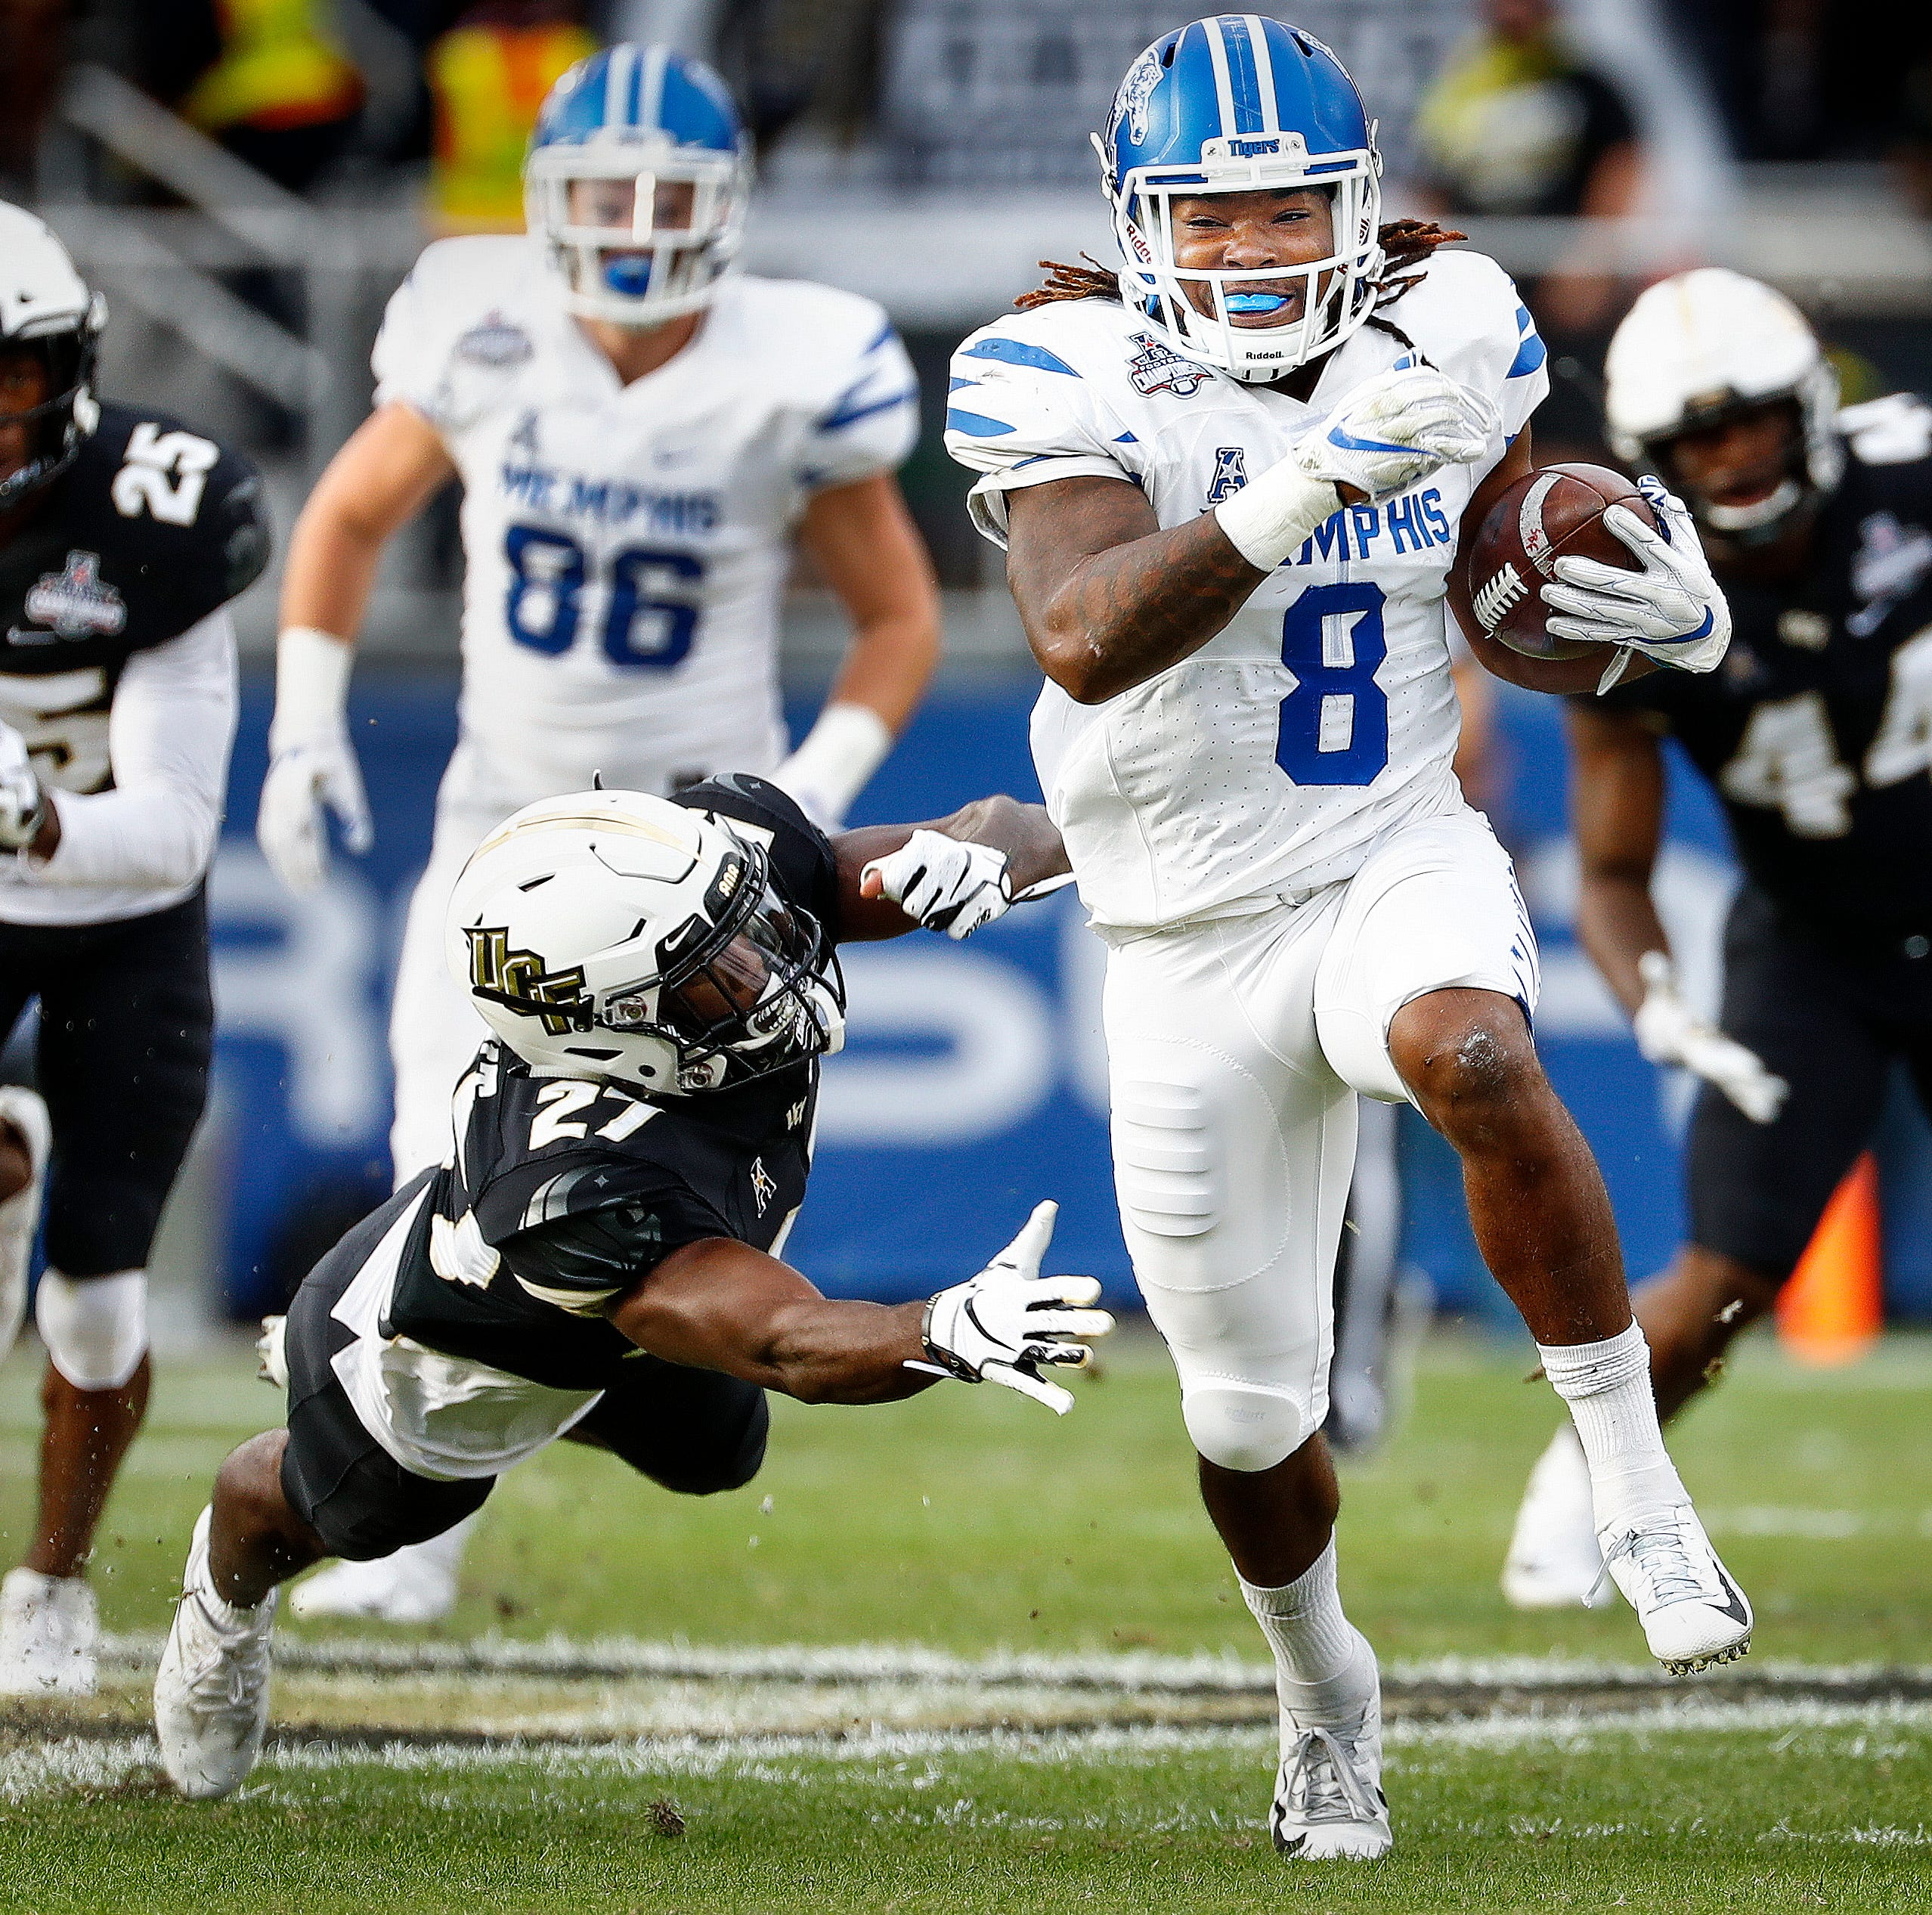 NFL Draft: What's being said about Memphis RB Darrell Henderson's stock